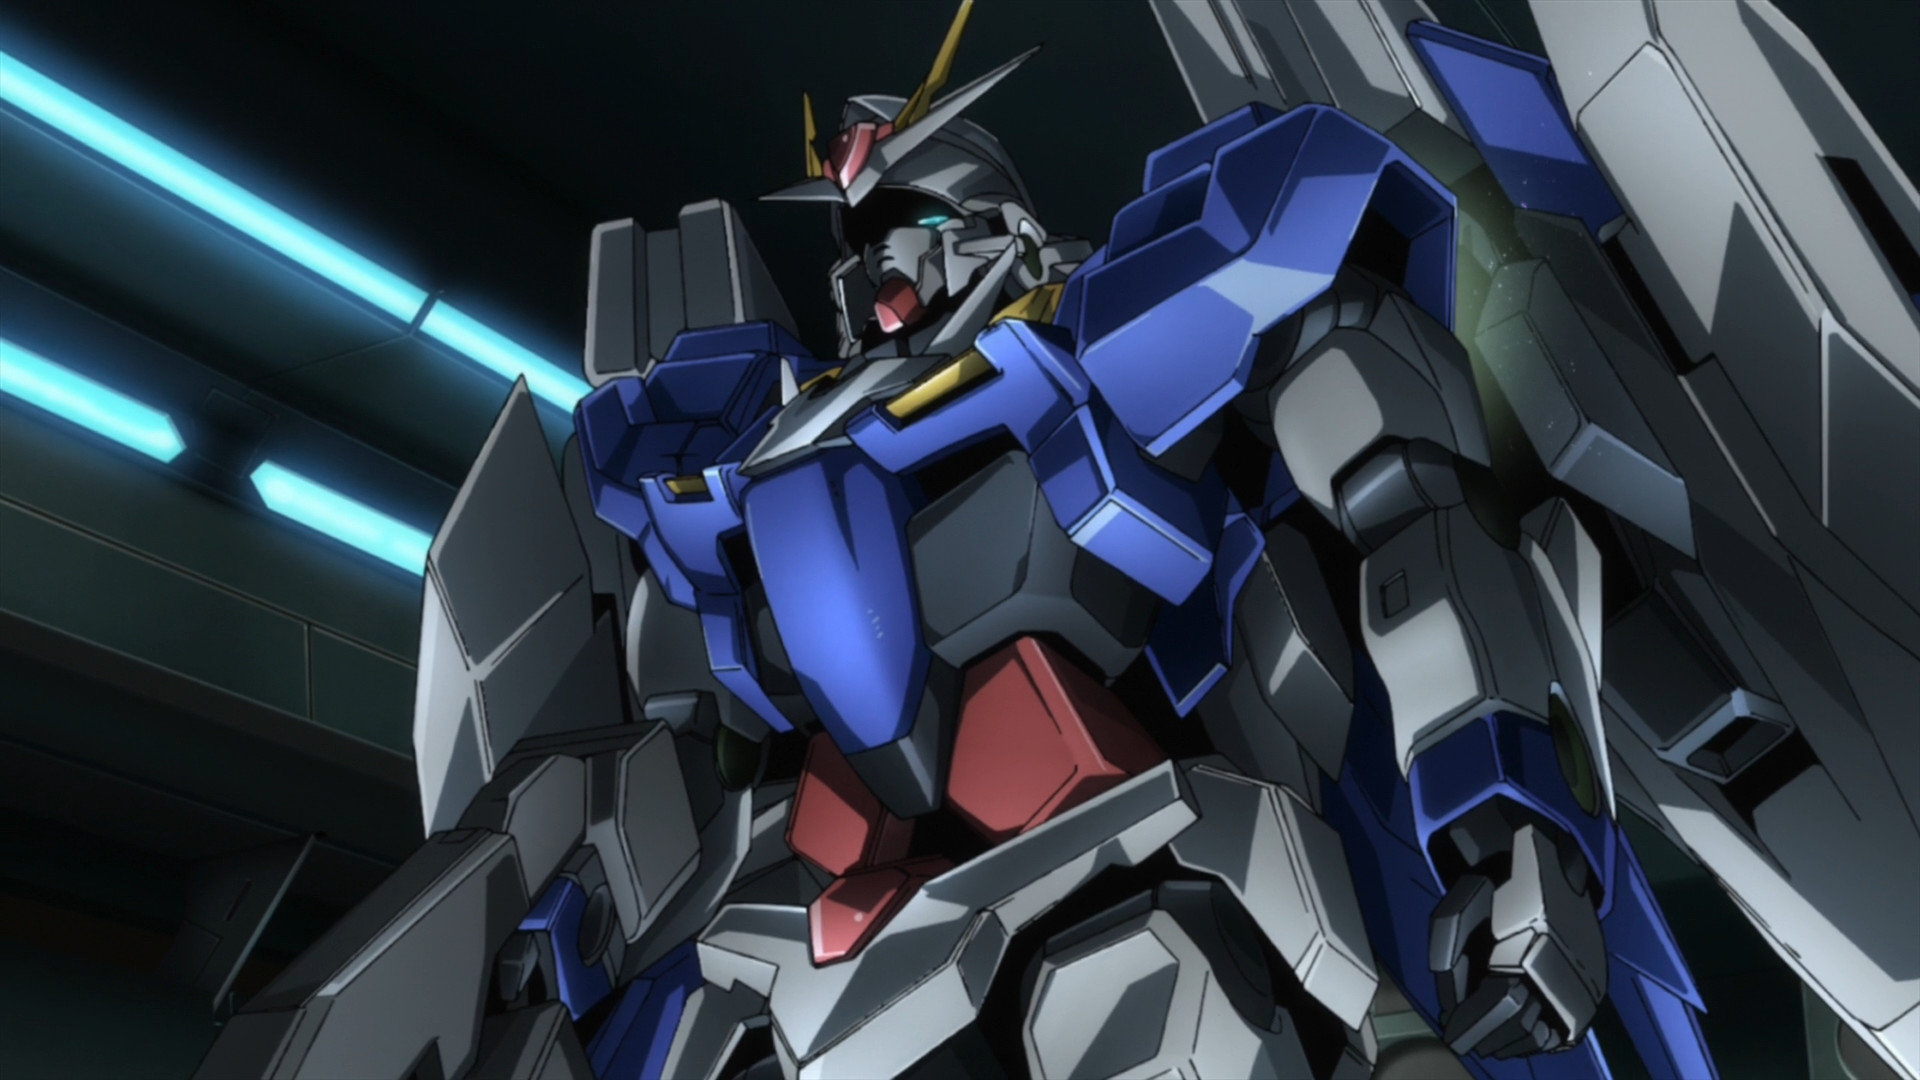 Download hd 1080p Gundam PC wallpaper ID:115205 for free